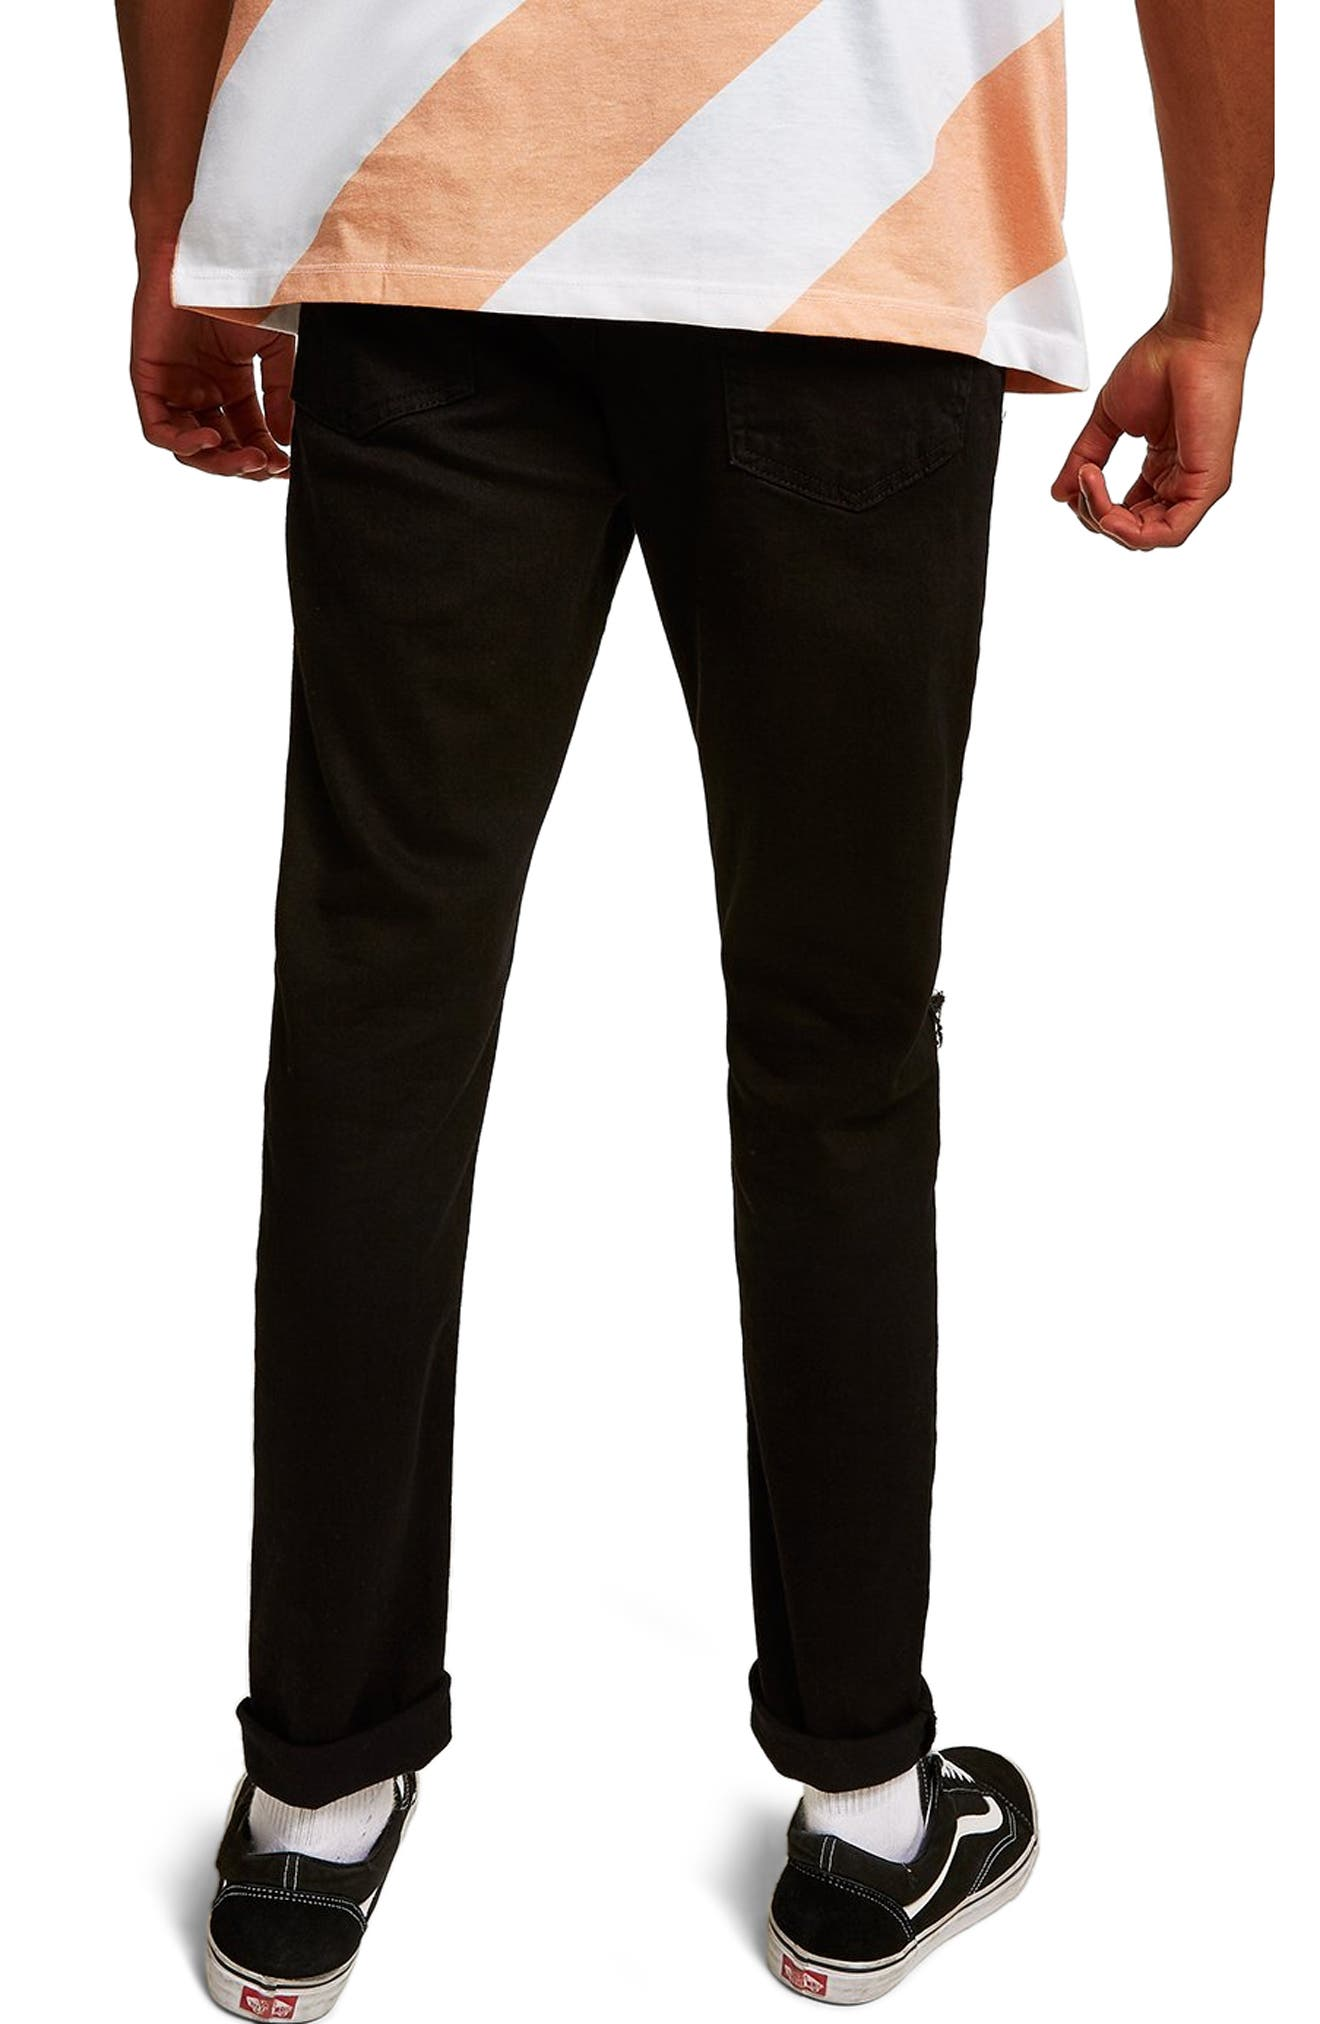 TOPMAN, Double Ripped Skinny Fit Jeans, Alternate thumbnail 2, color, BLACK